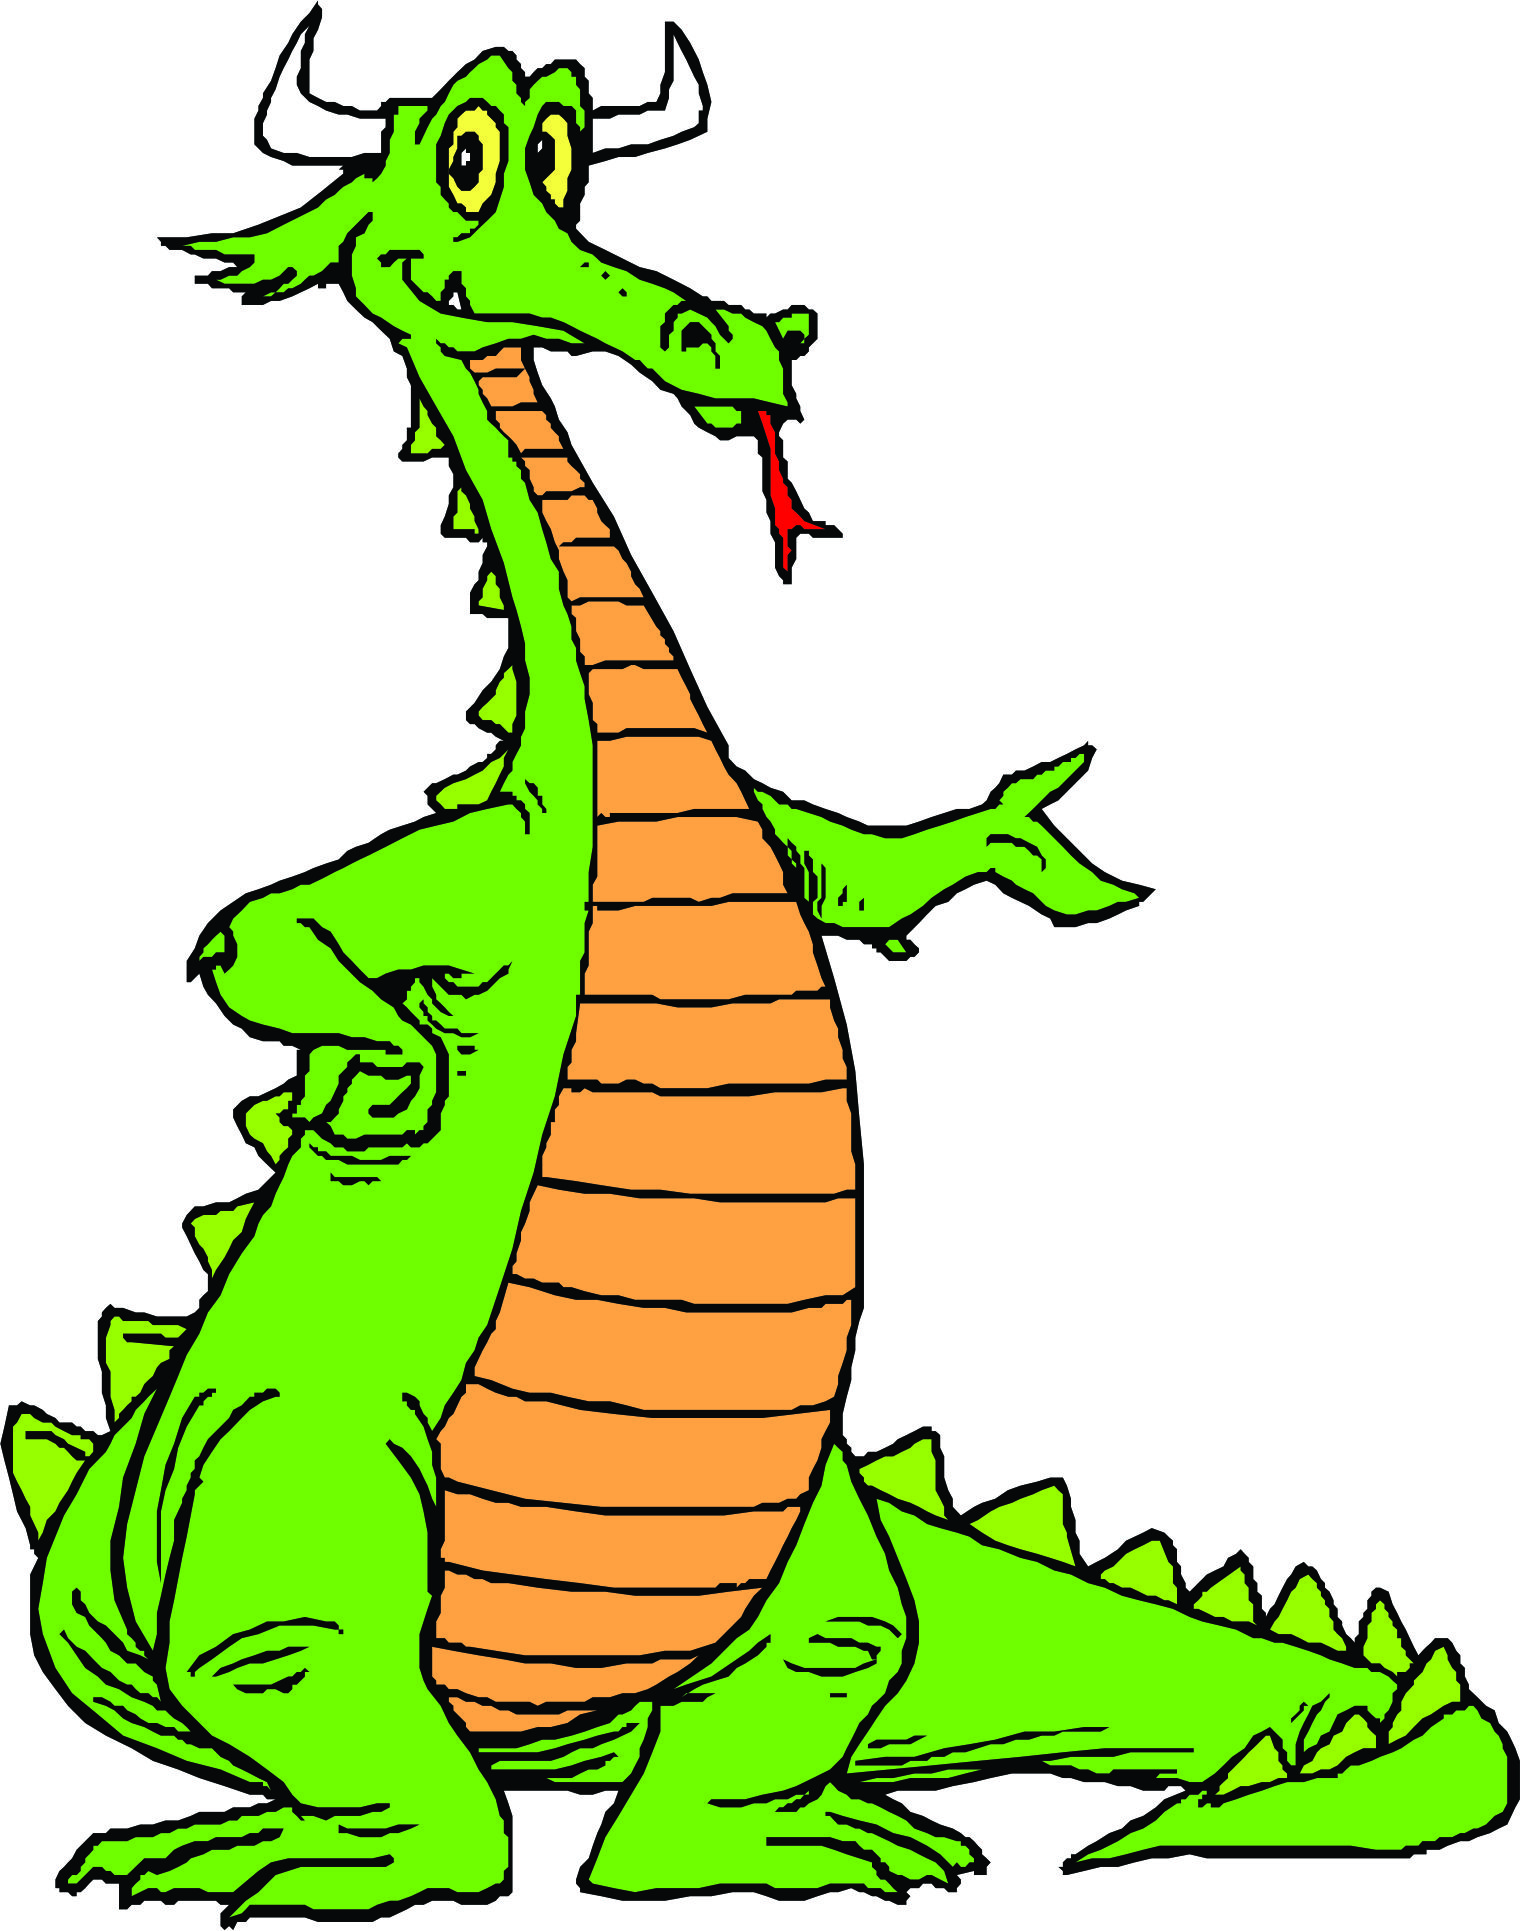 Cartoon Dragons | Page 2 - ClipArt Best - ClipArt Best